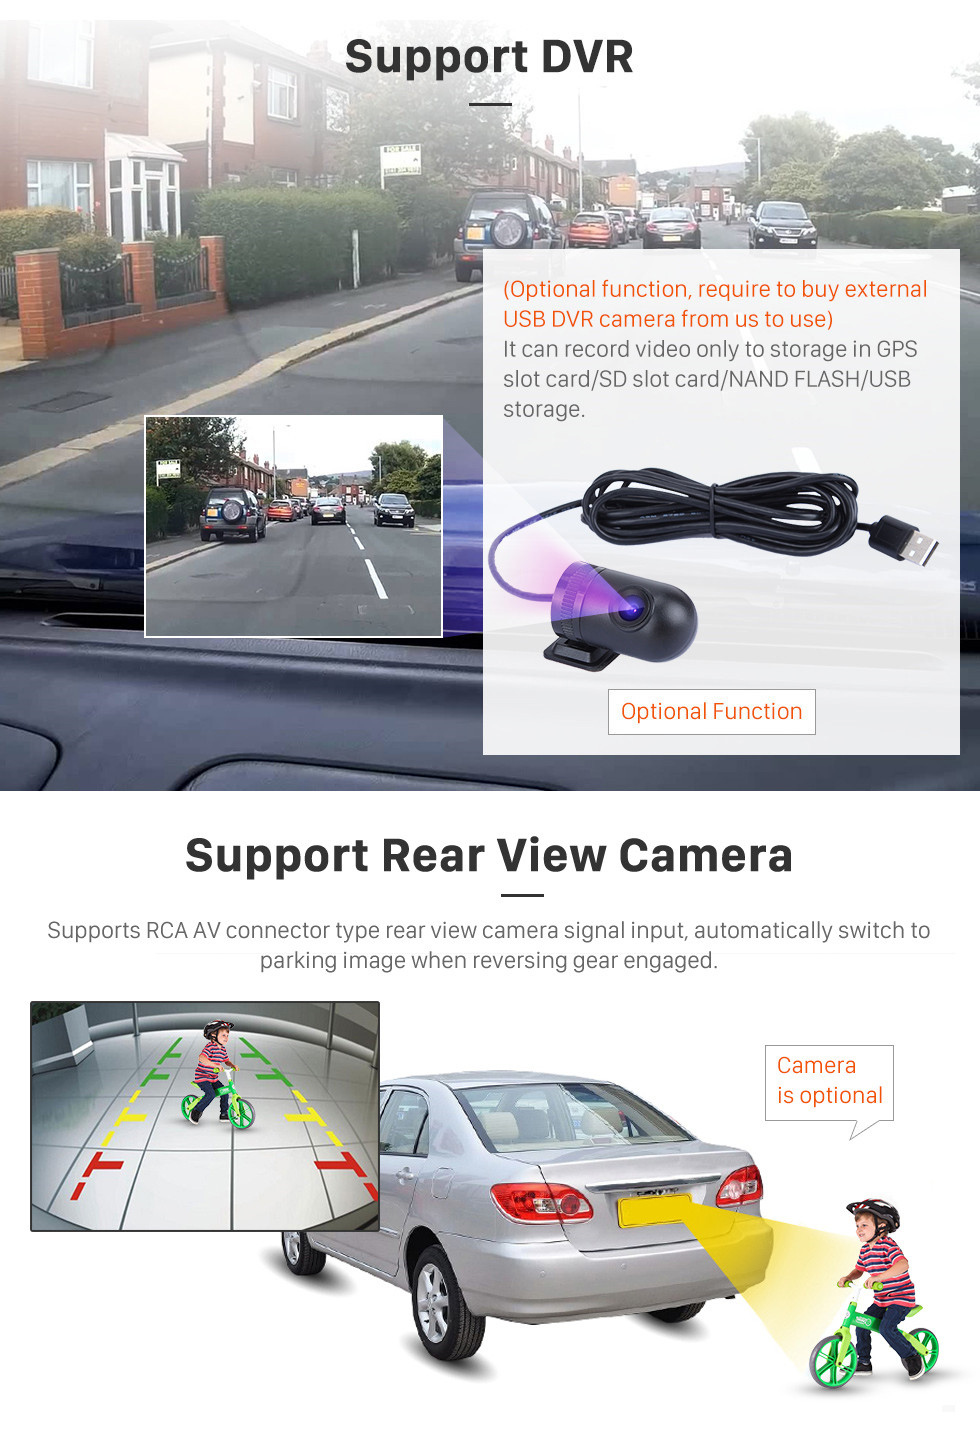 Seicane 9 Inch For 2008-2010 Toyota Corolla Android 10.0 Capacitive Touch Screen Radio GPS Navigation system with Bluetooth TPMS DVR OBD II Rear camera AUX USB SD 3G WiFi Steering Wheel Control Video